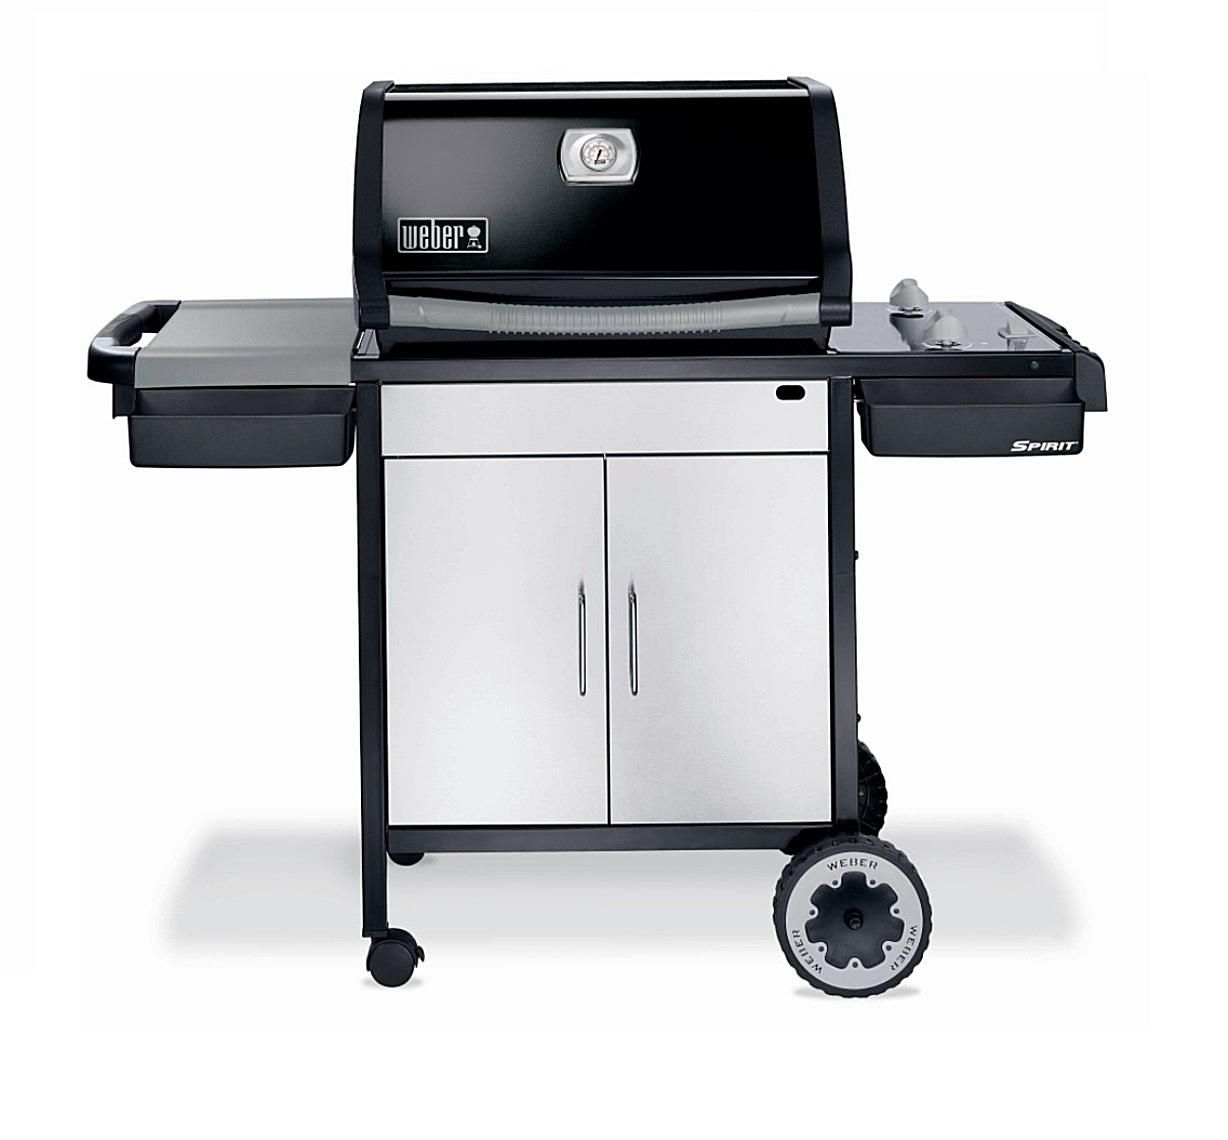 Weber spirit e 210 gas grill review for Housse barbecue weber spirit